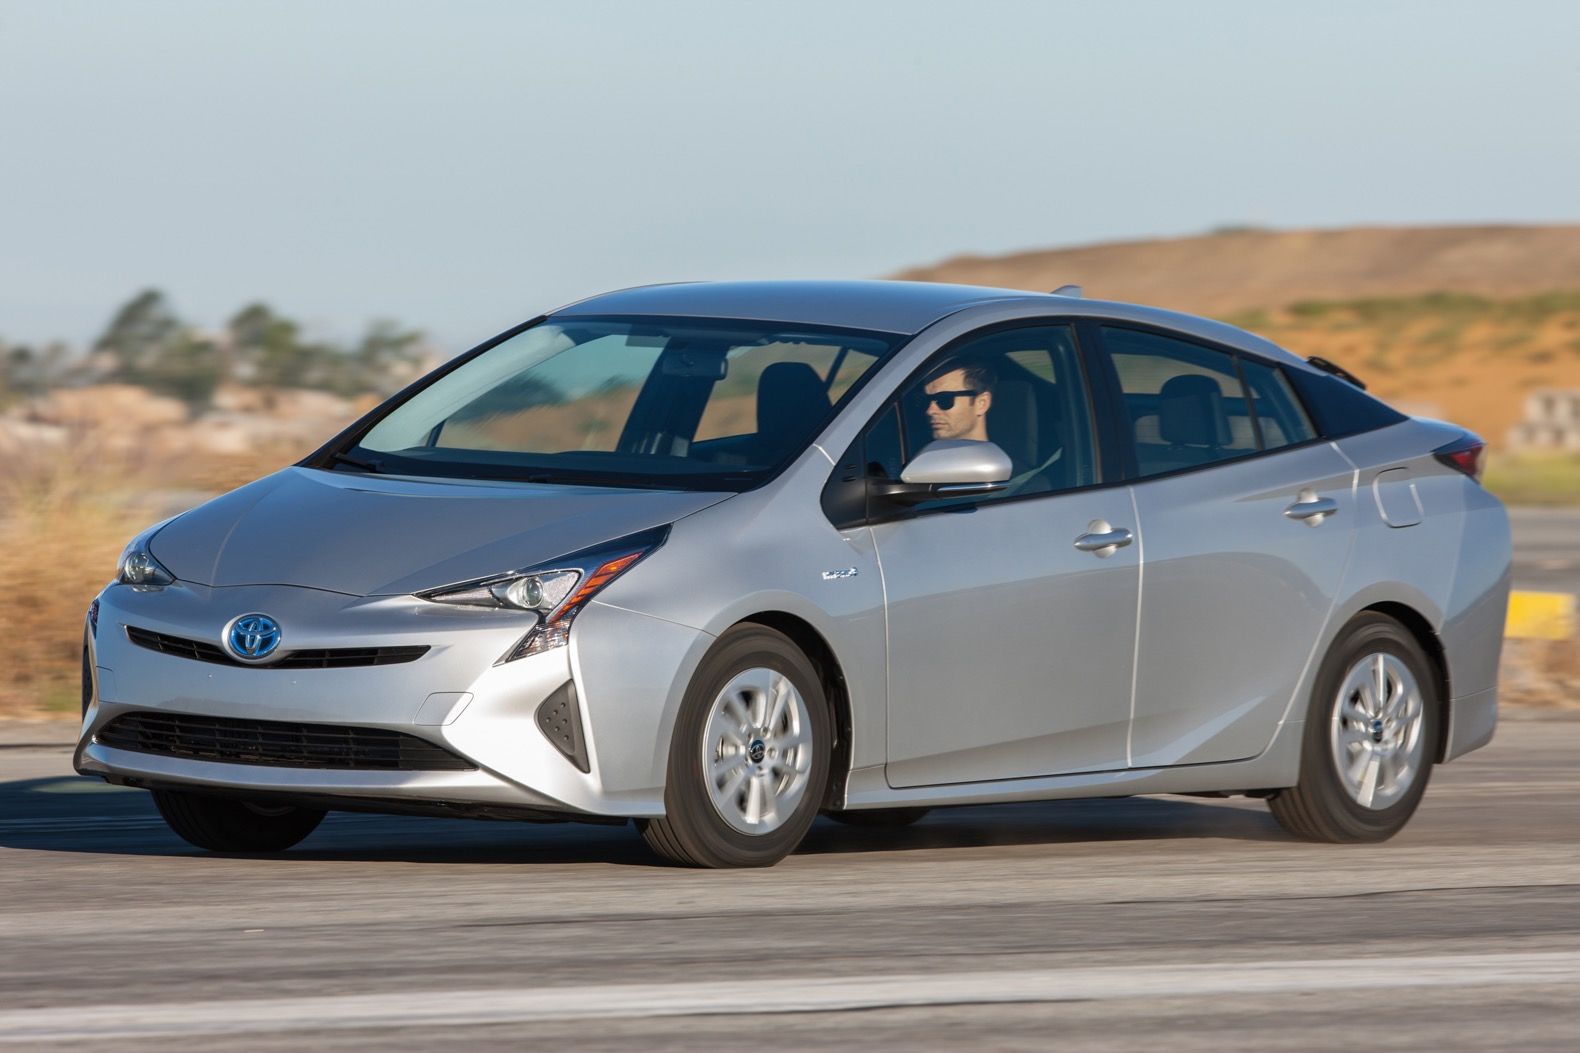 Toyota Prius Has The Best Gas Mileage Of Any Car Consumer Reports Ever Tested